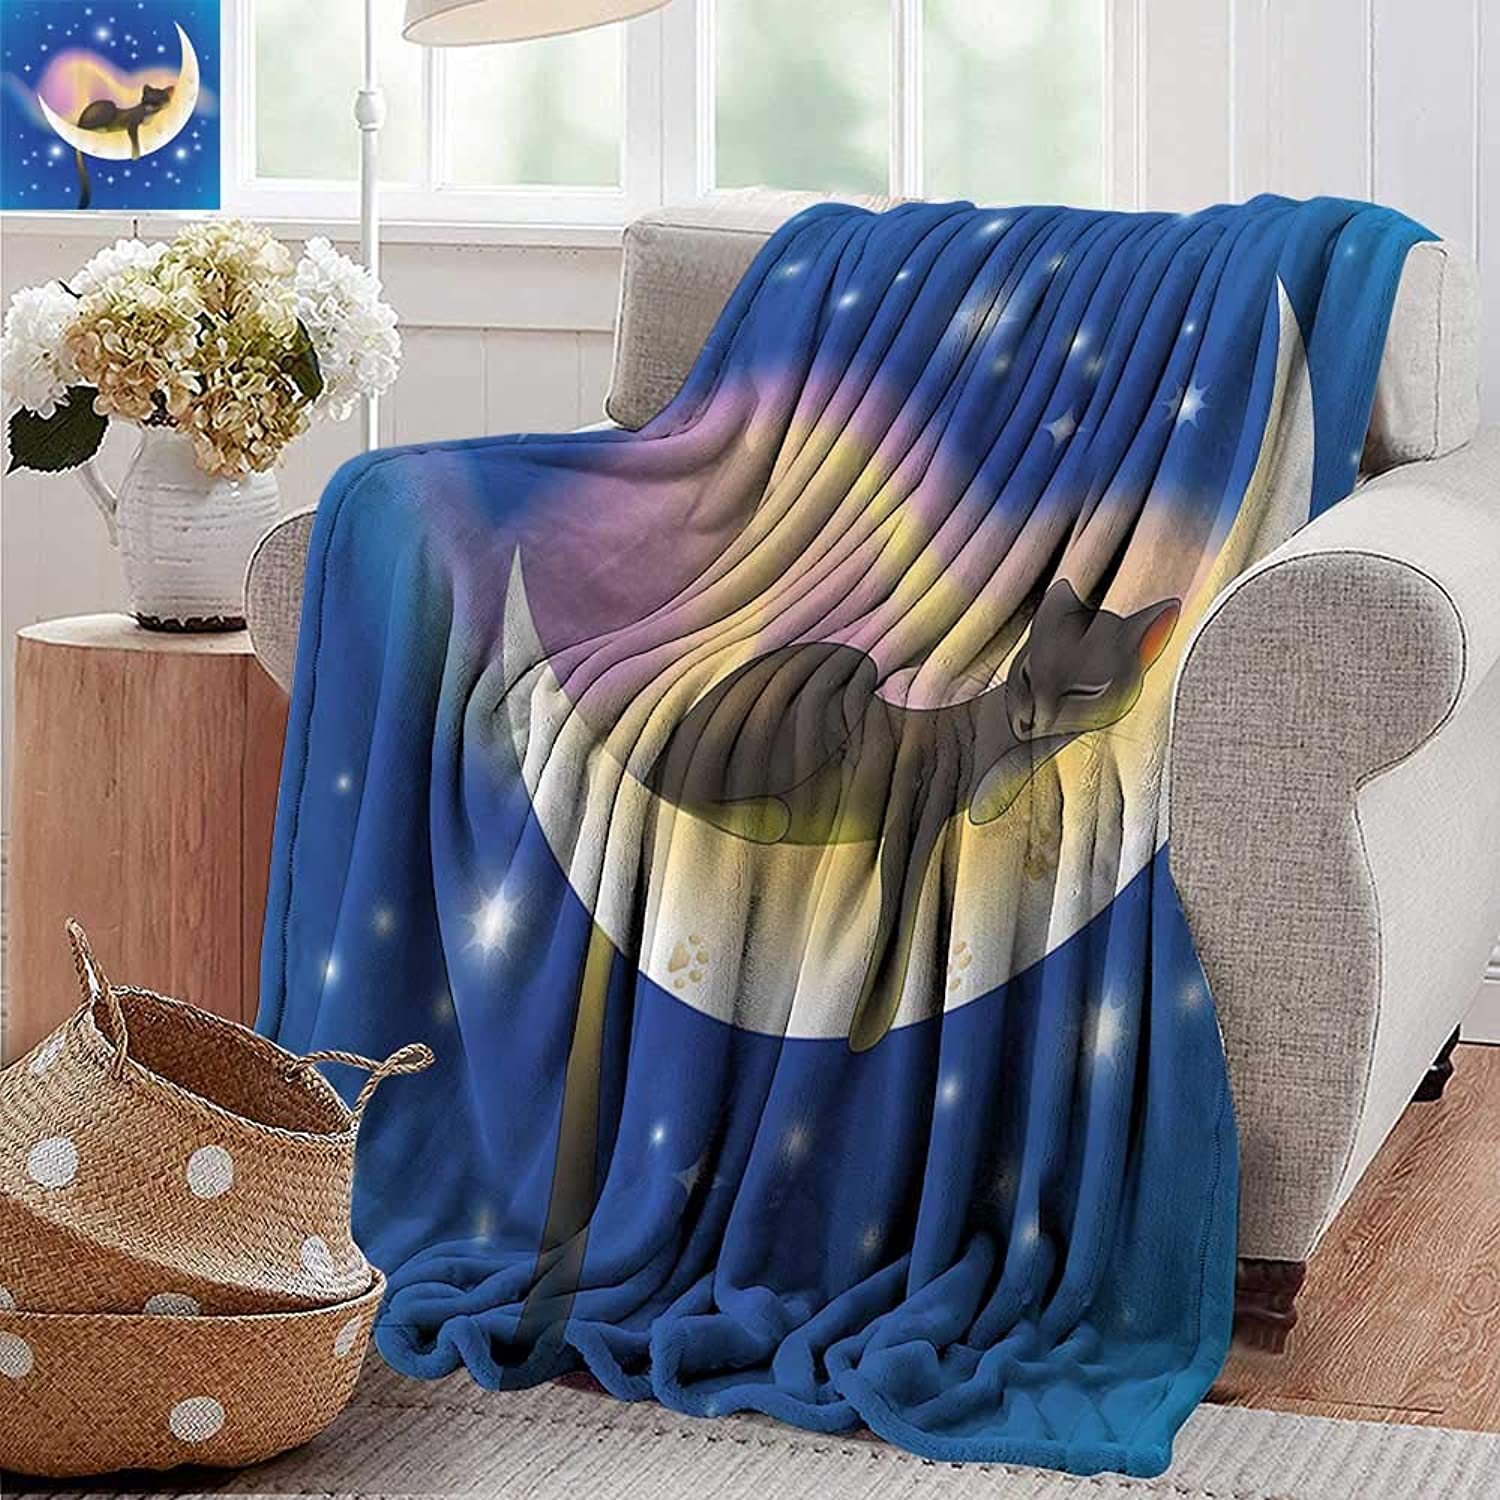 PearlRolan Faux Fur Throw Blanket,Cat,Cat Sleeping on Crescent Moon Stars Night Sweet Dreams Themed Kids Nursery Design,bluee Yellow,Soft Fabric for Couch Sofa Easy Care 50 x60